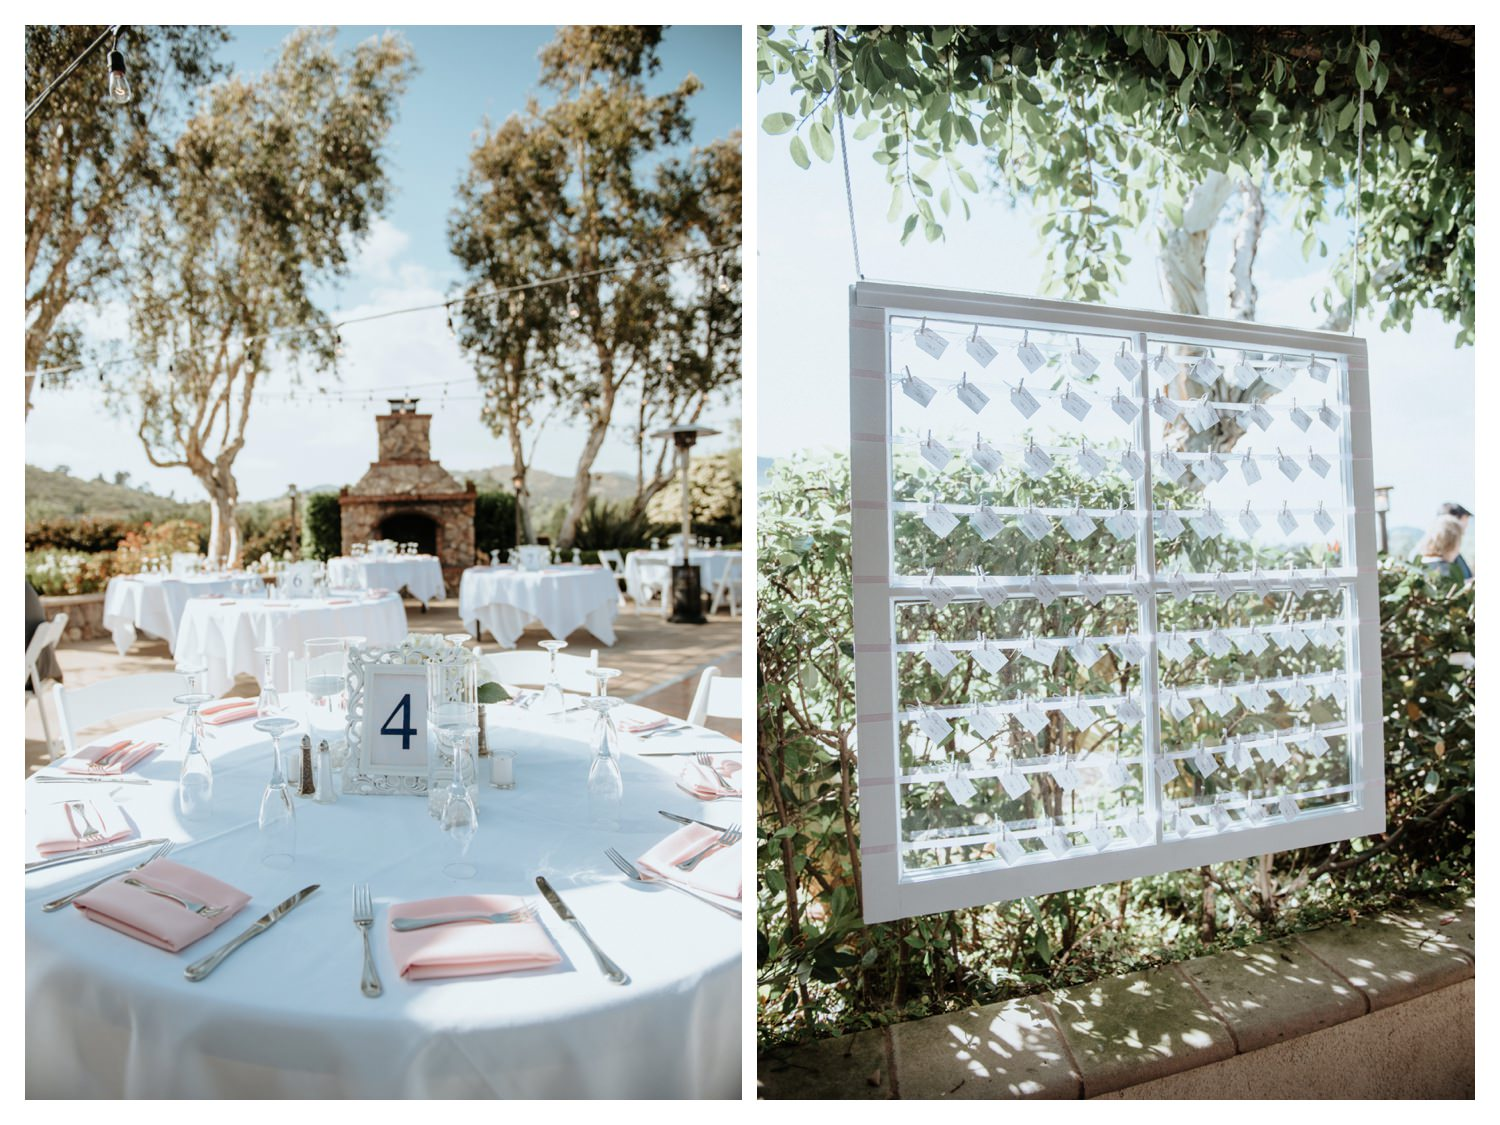 Wedding details at Twin Oaks Golf Course in San Marcos, CA.